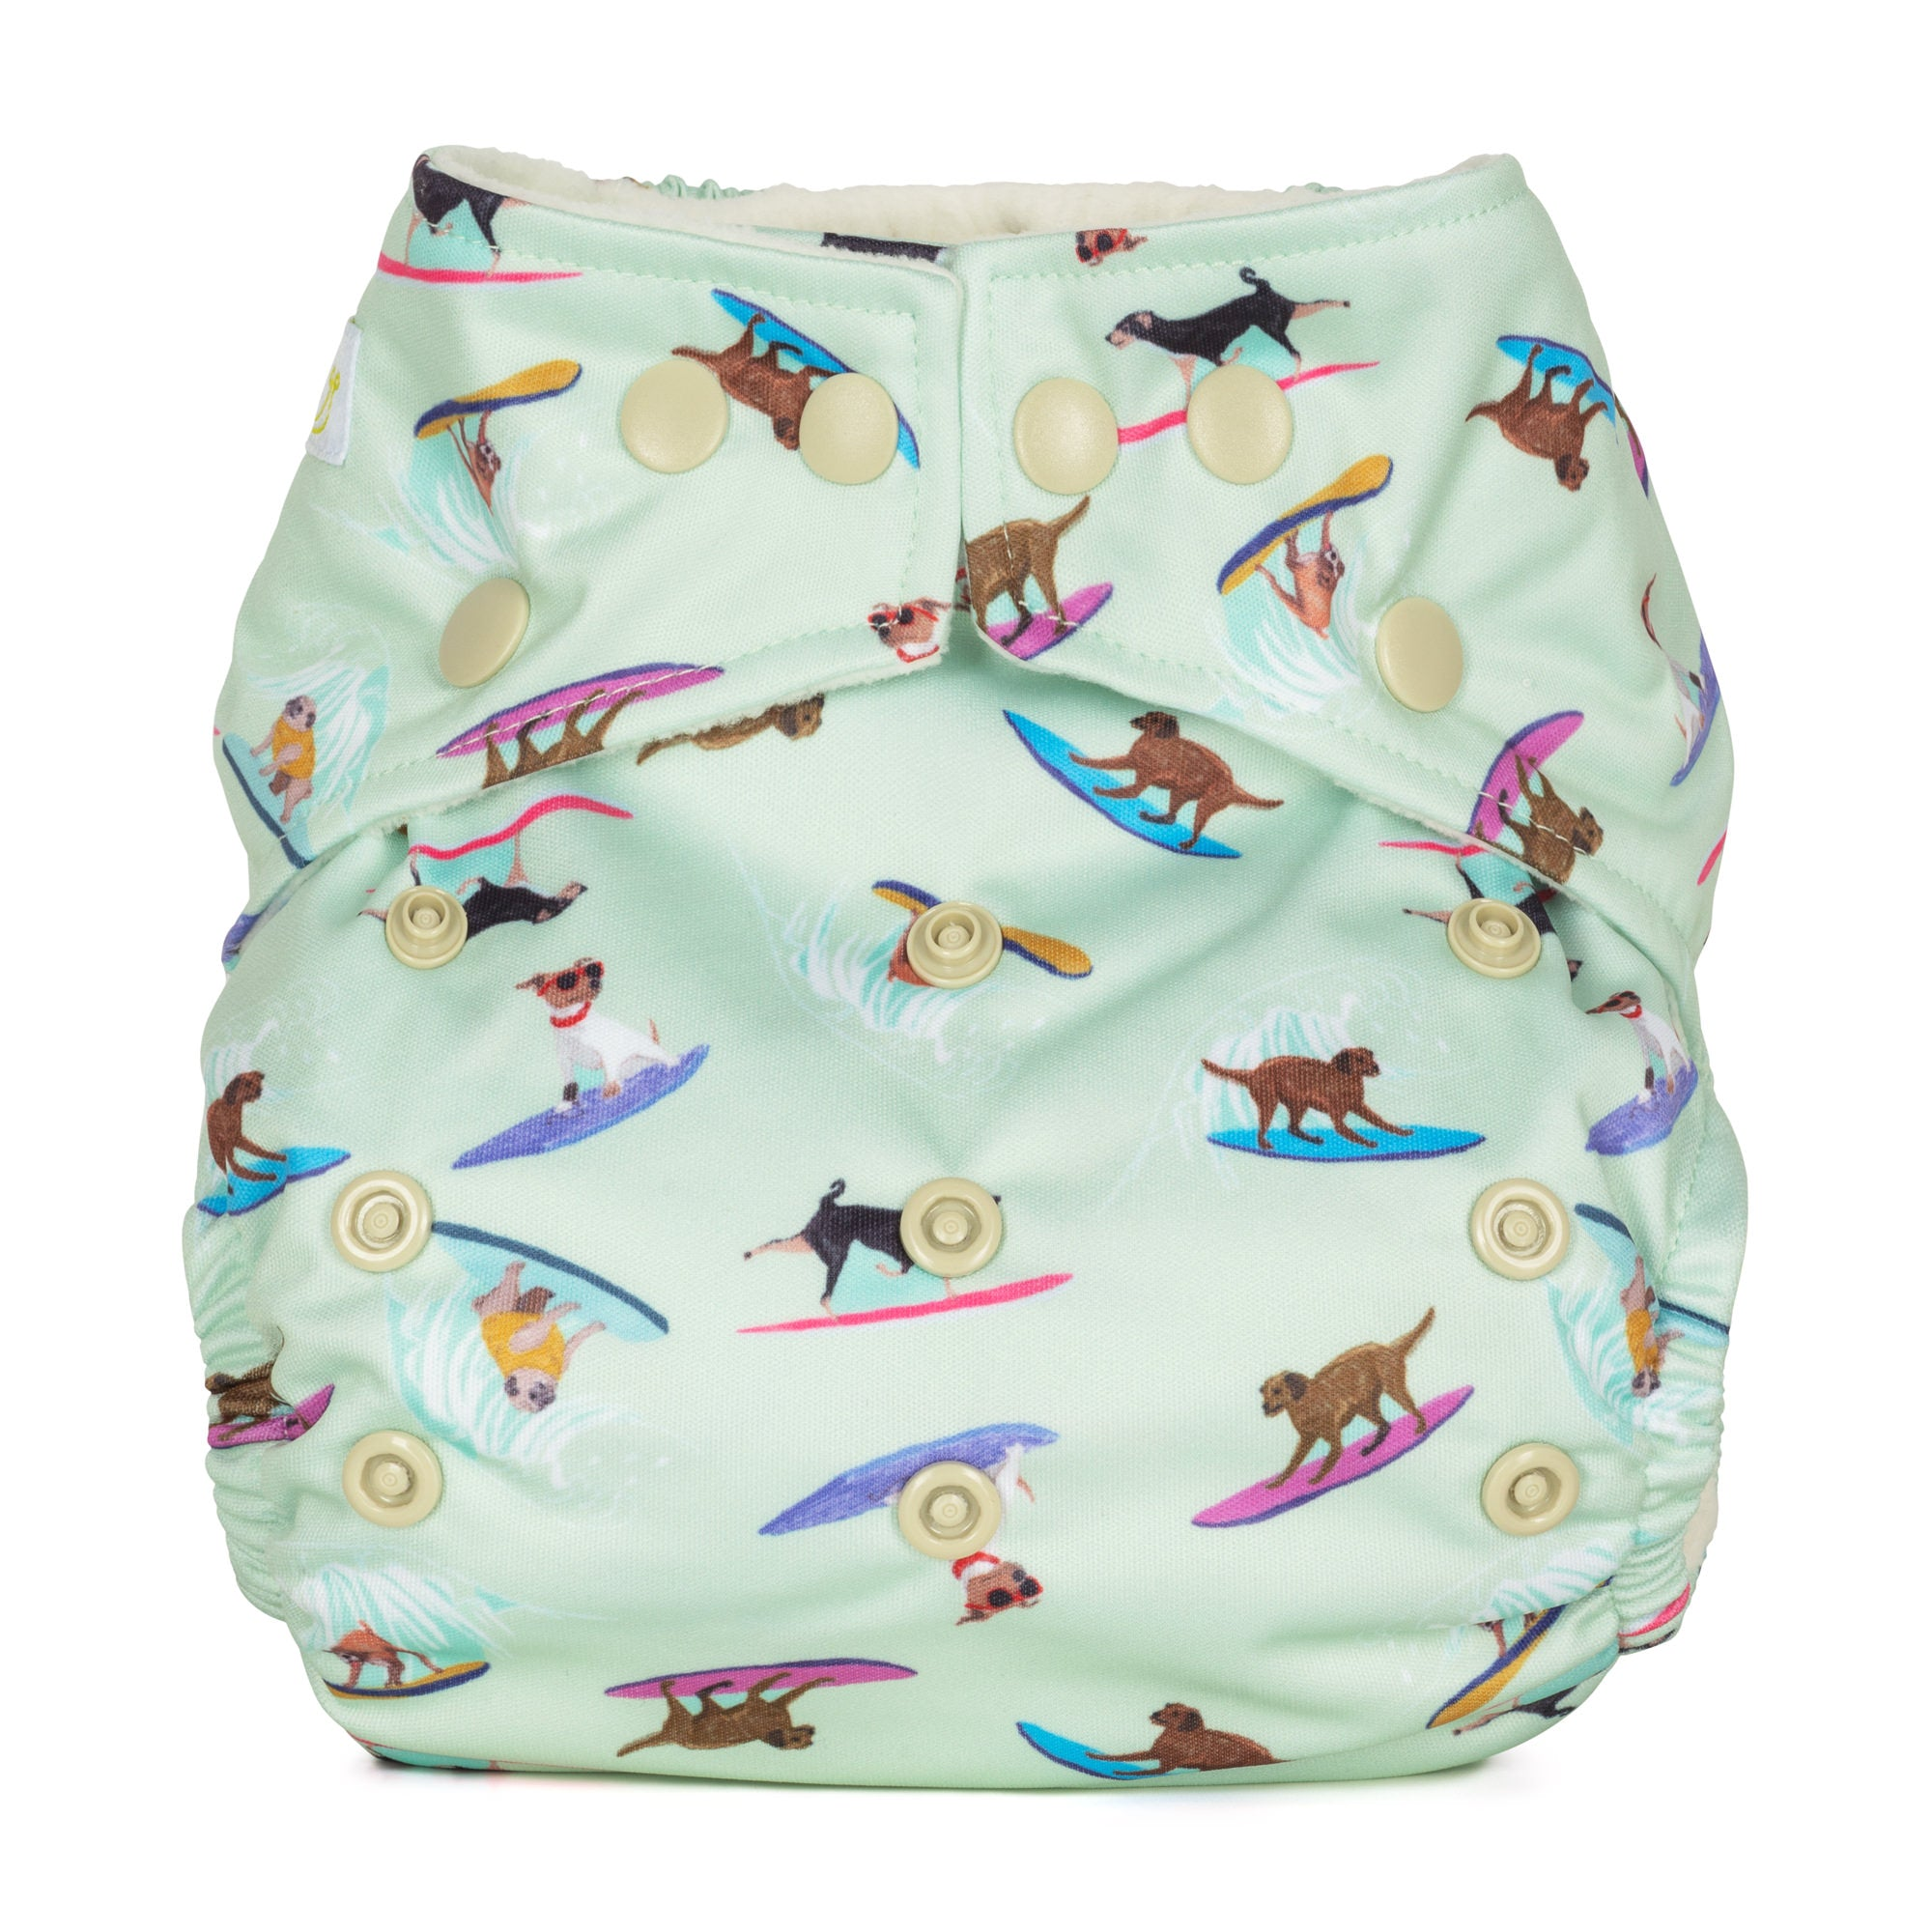 Baba and Boo One Size Pocket Cloth Nappy - Surfing